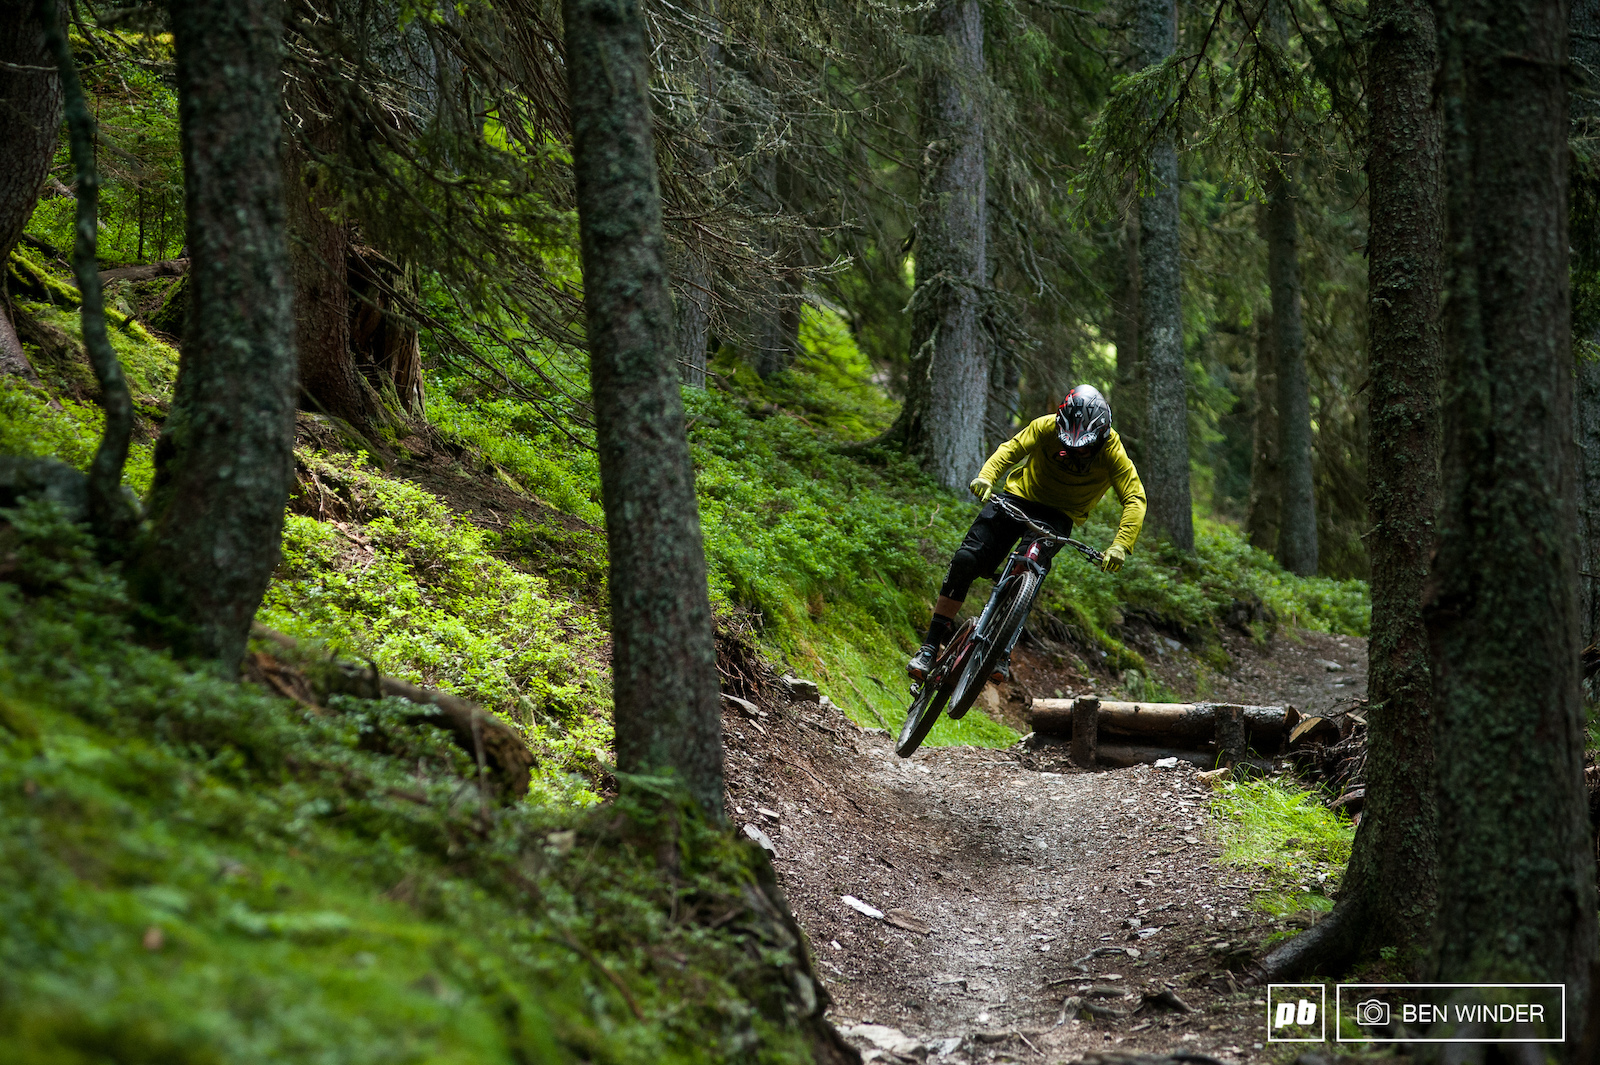 Some of the downhill trails in Saalbach are tough and rough. We were slightly out of our depth on trail bikes. But on a downhill bike they d be incredible.